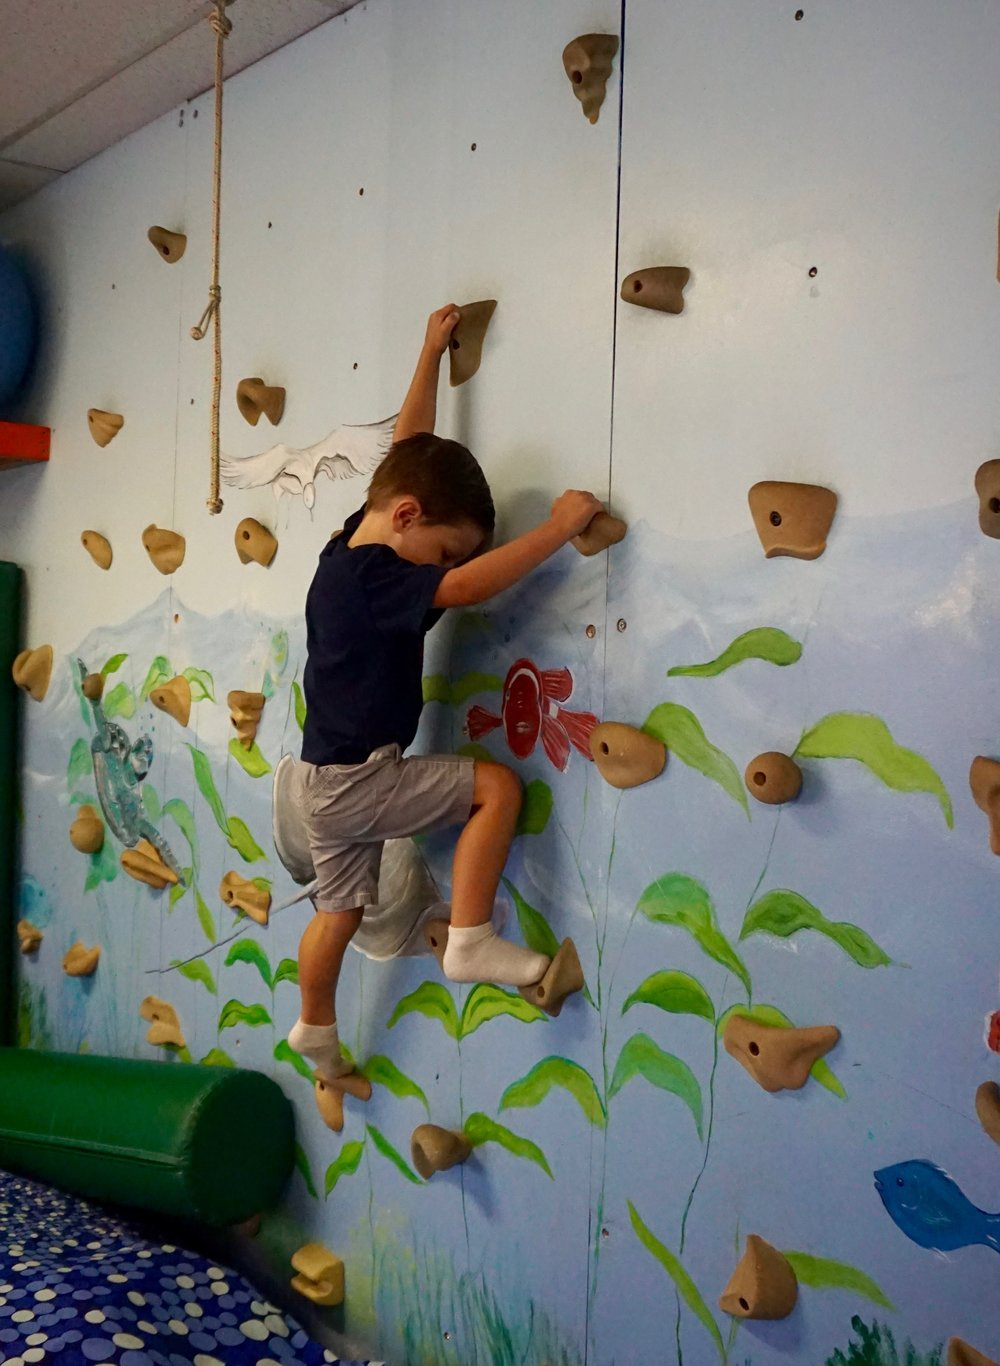 Get your child help with coordination and balance.